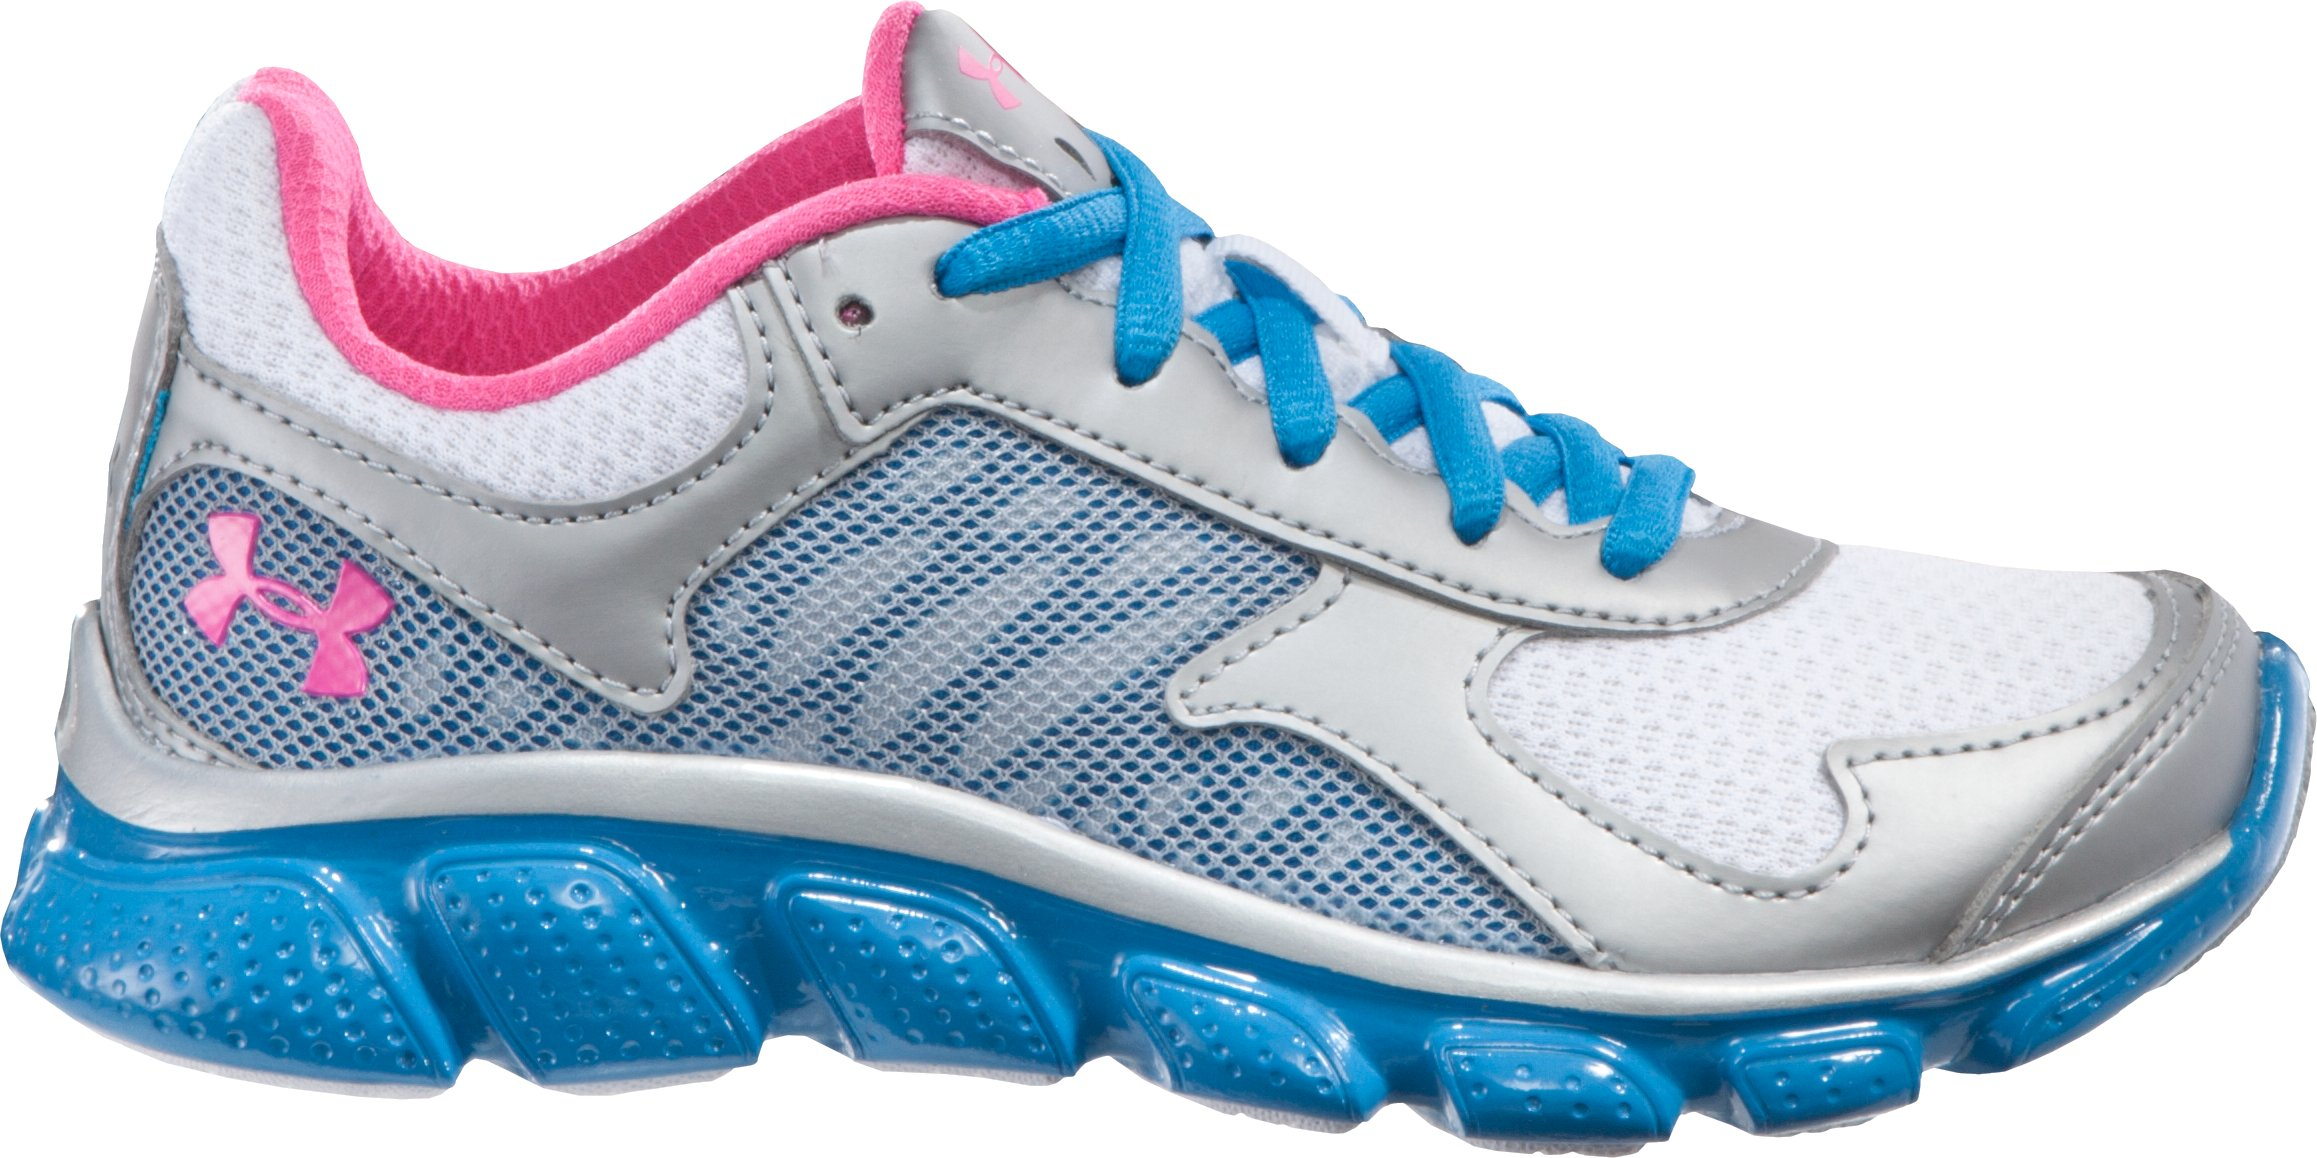 Girls' Pre-School Skulpt, Metallic Silver